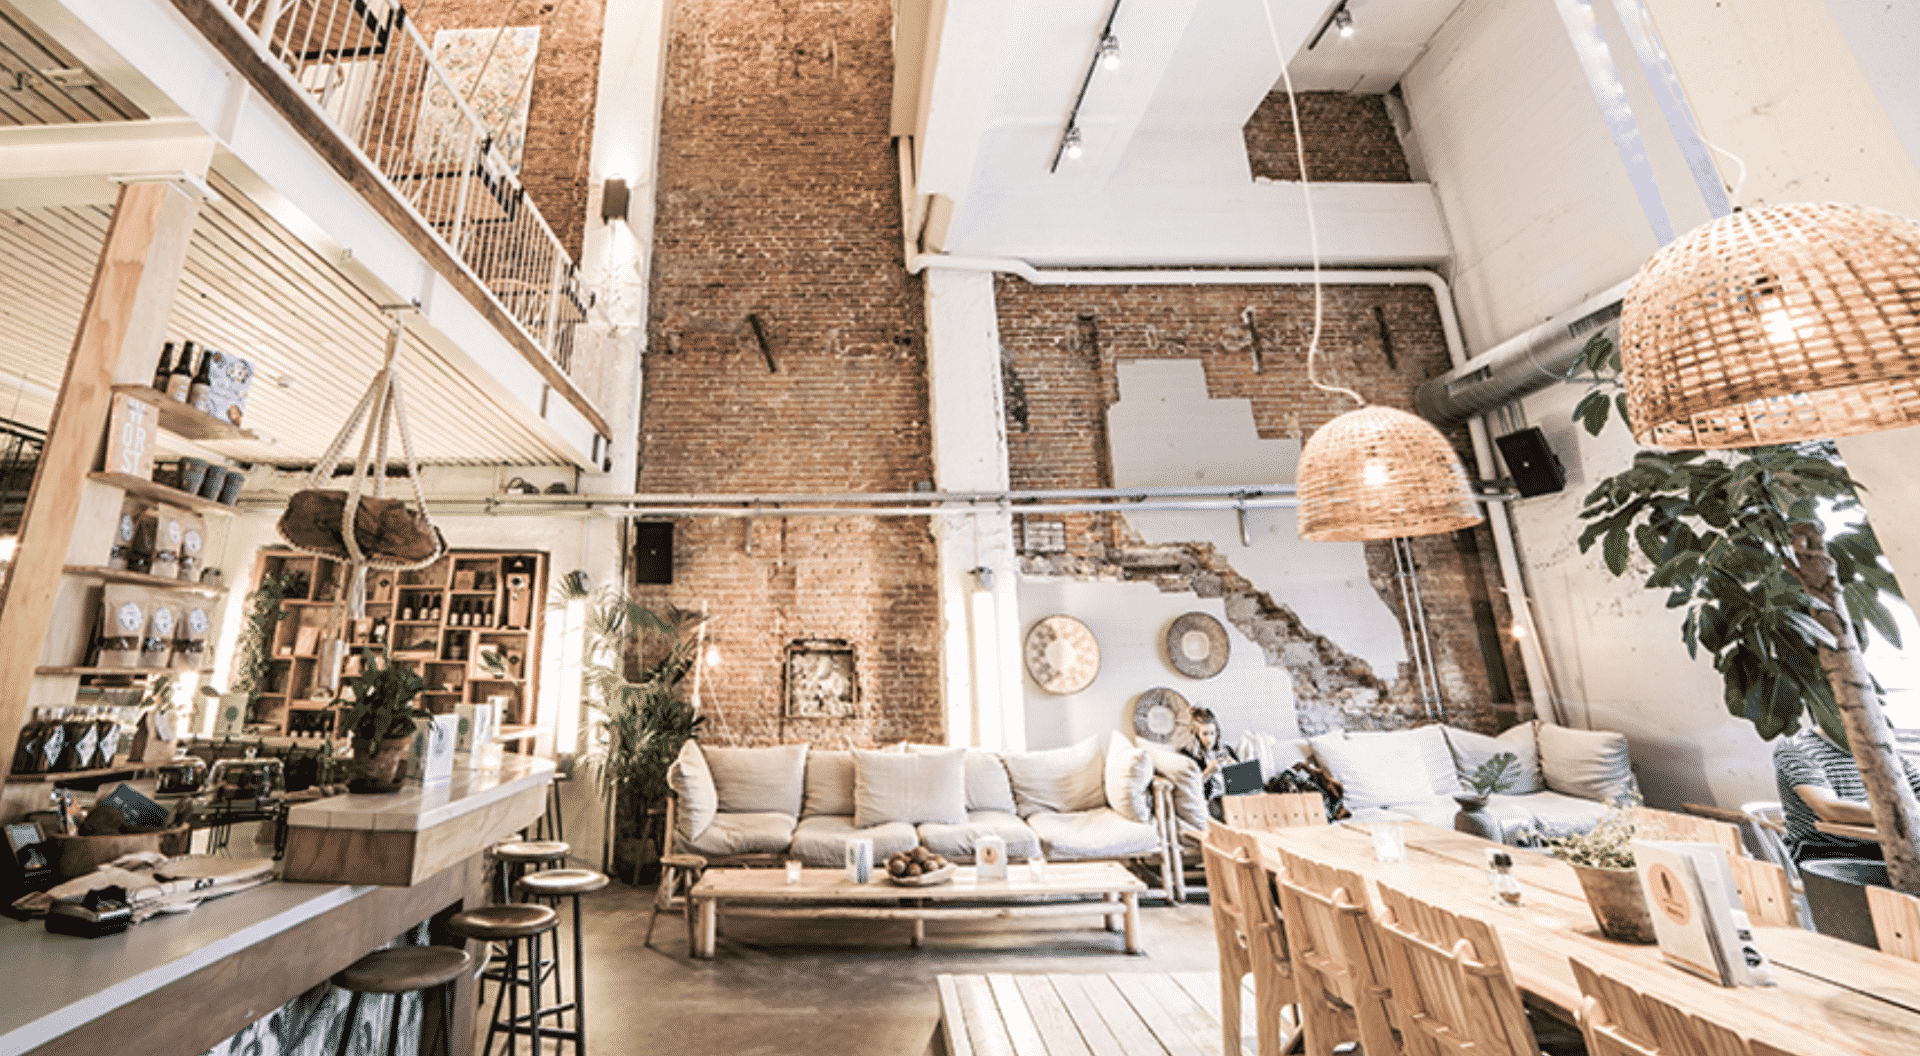 Coffeeshop by day and bar in Amsterdam